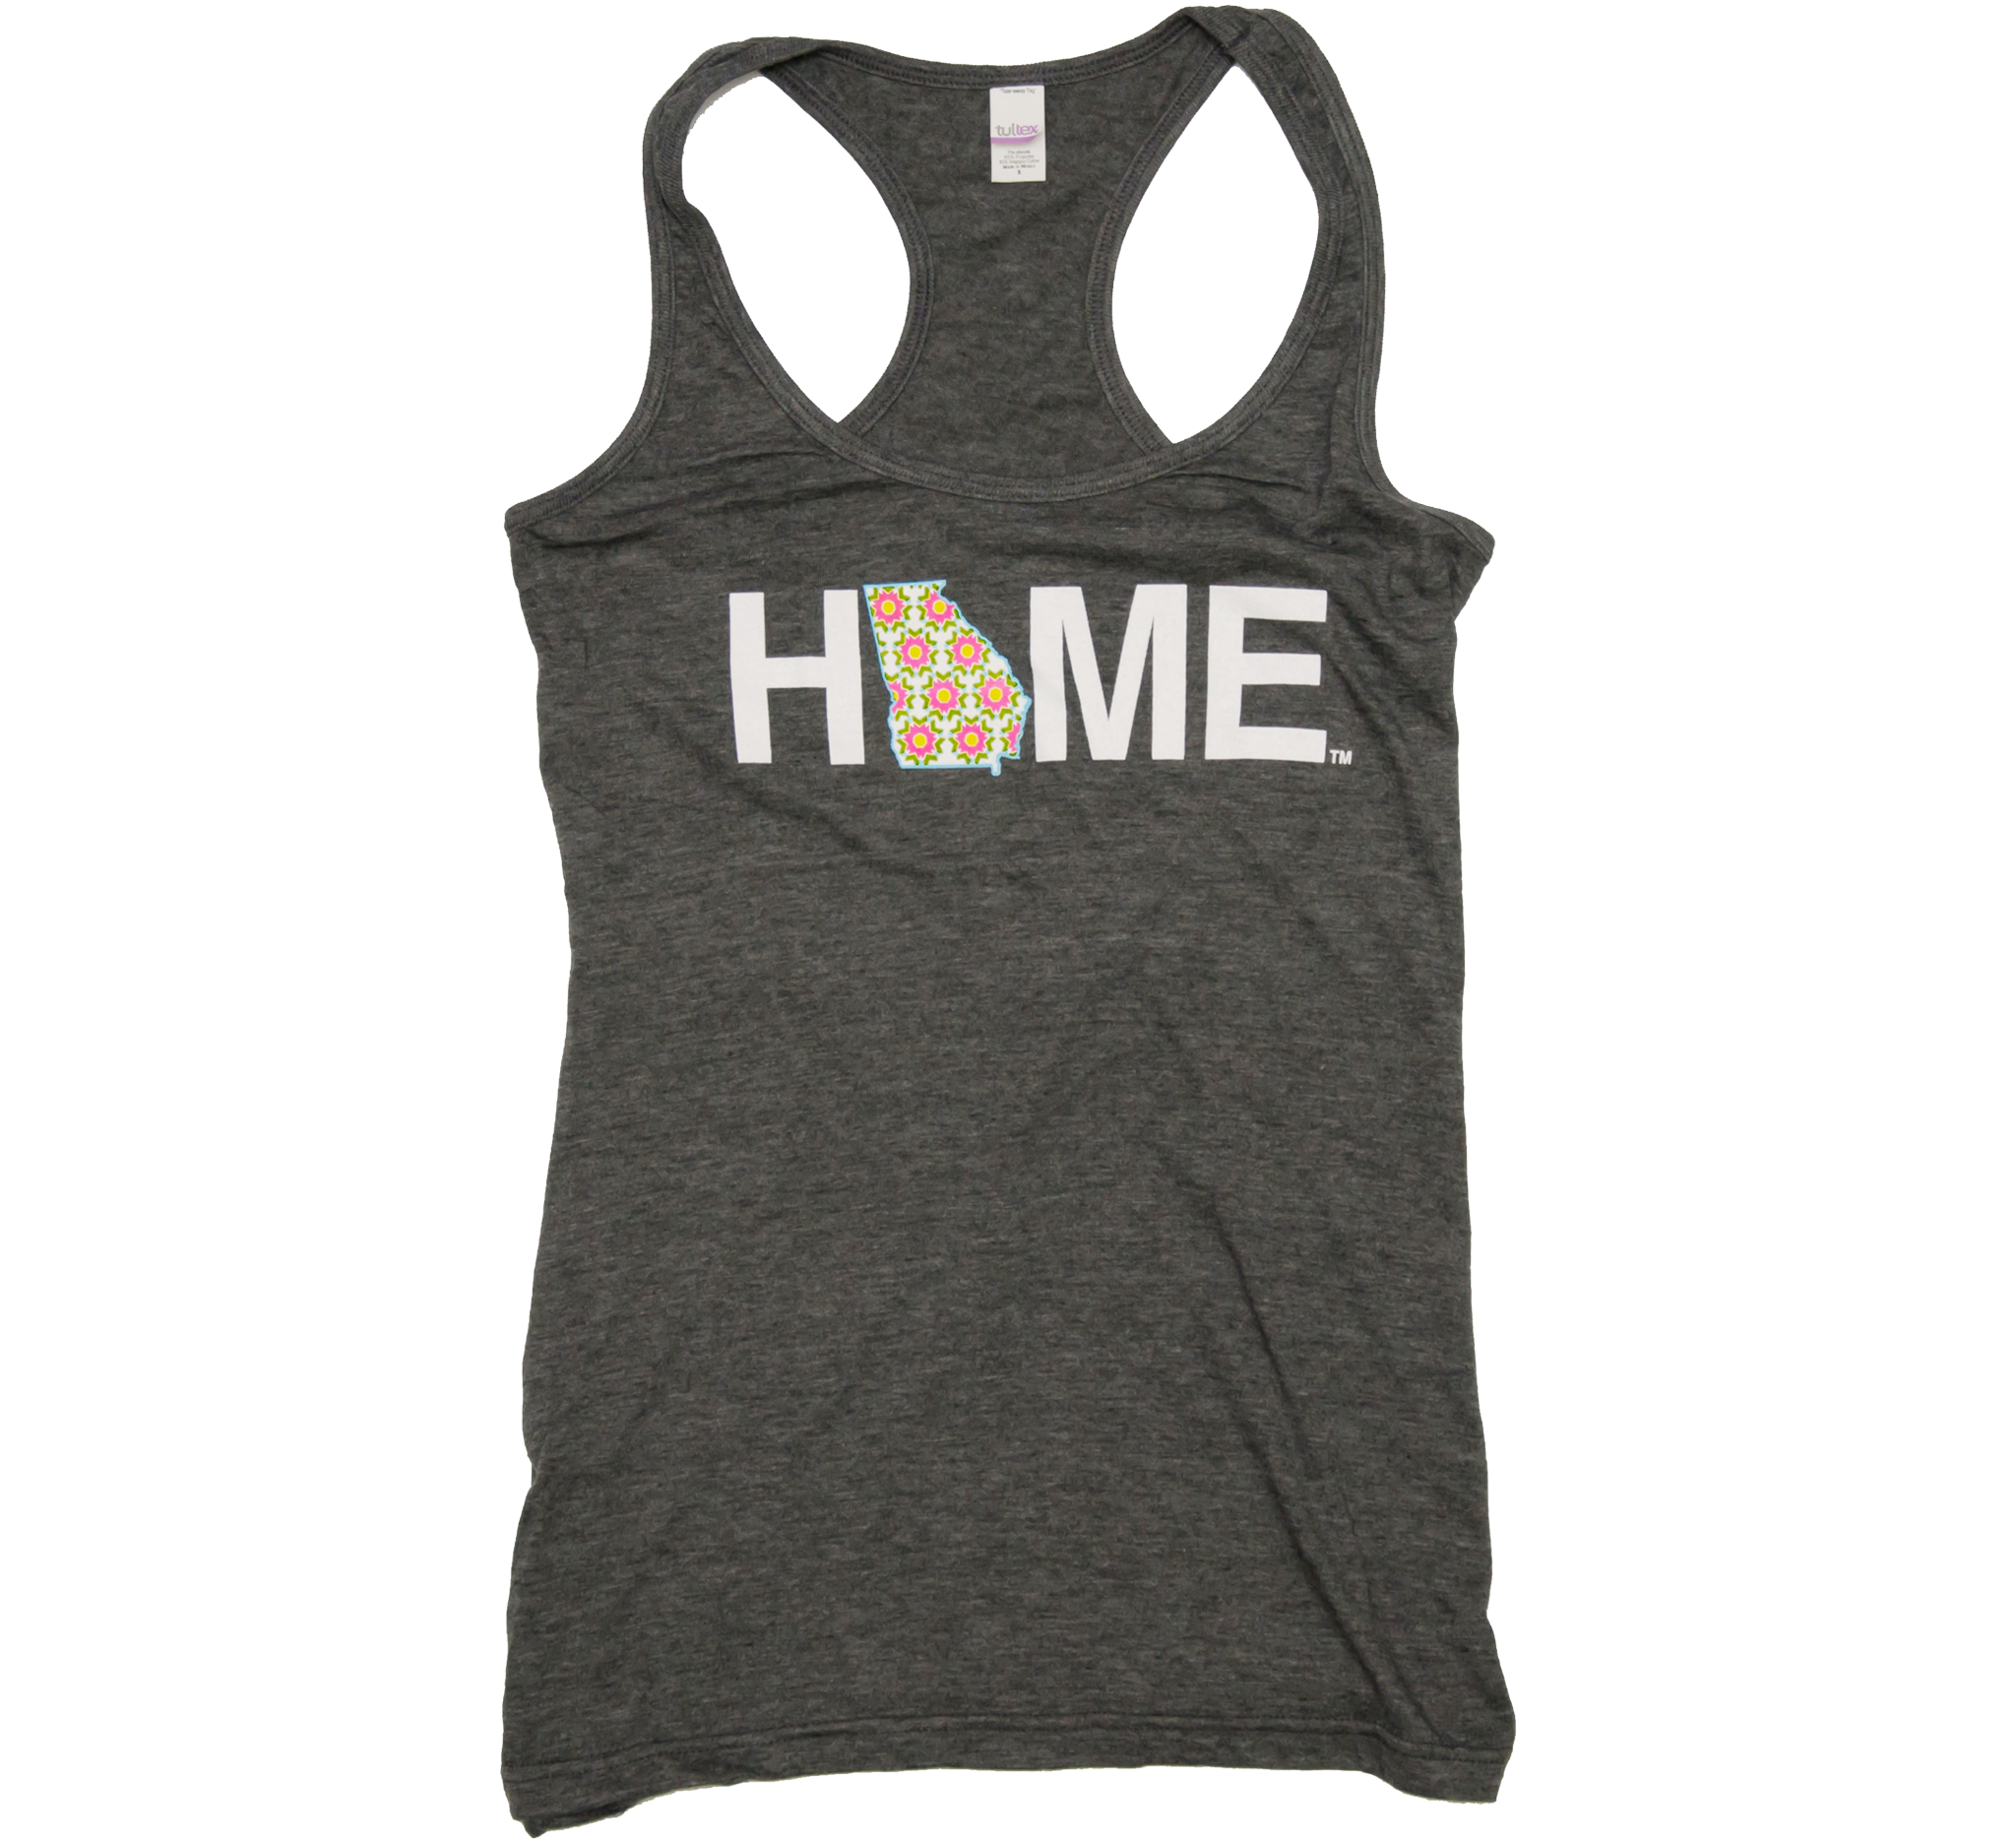 GEORGIA LADIES TANK | HOME | AZTEC